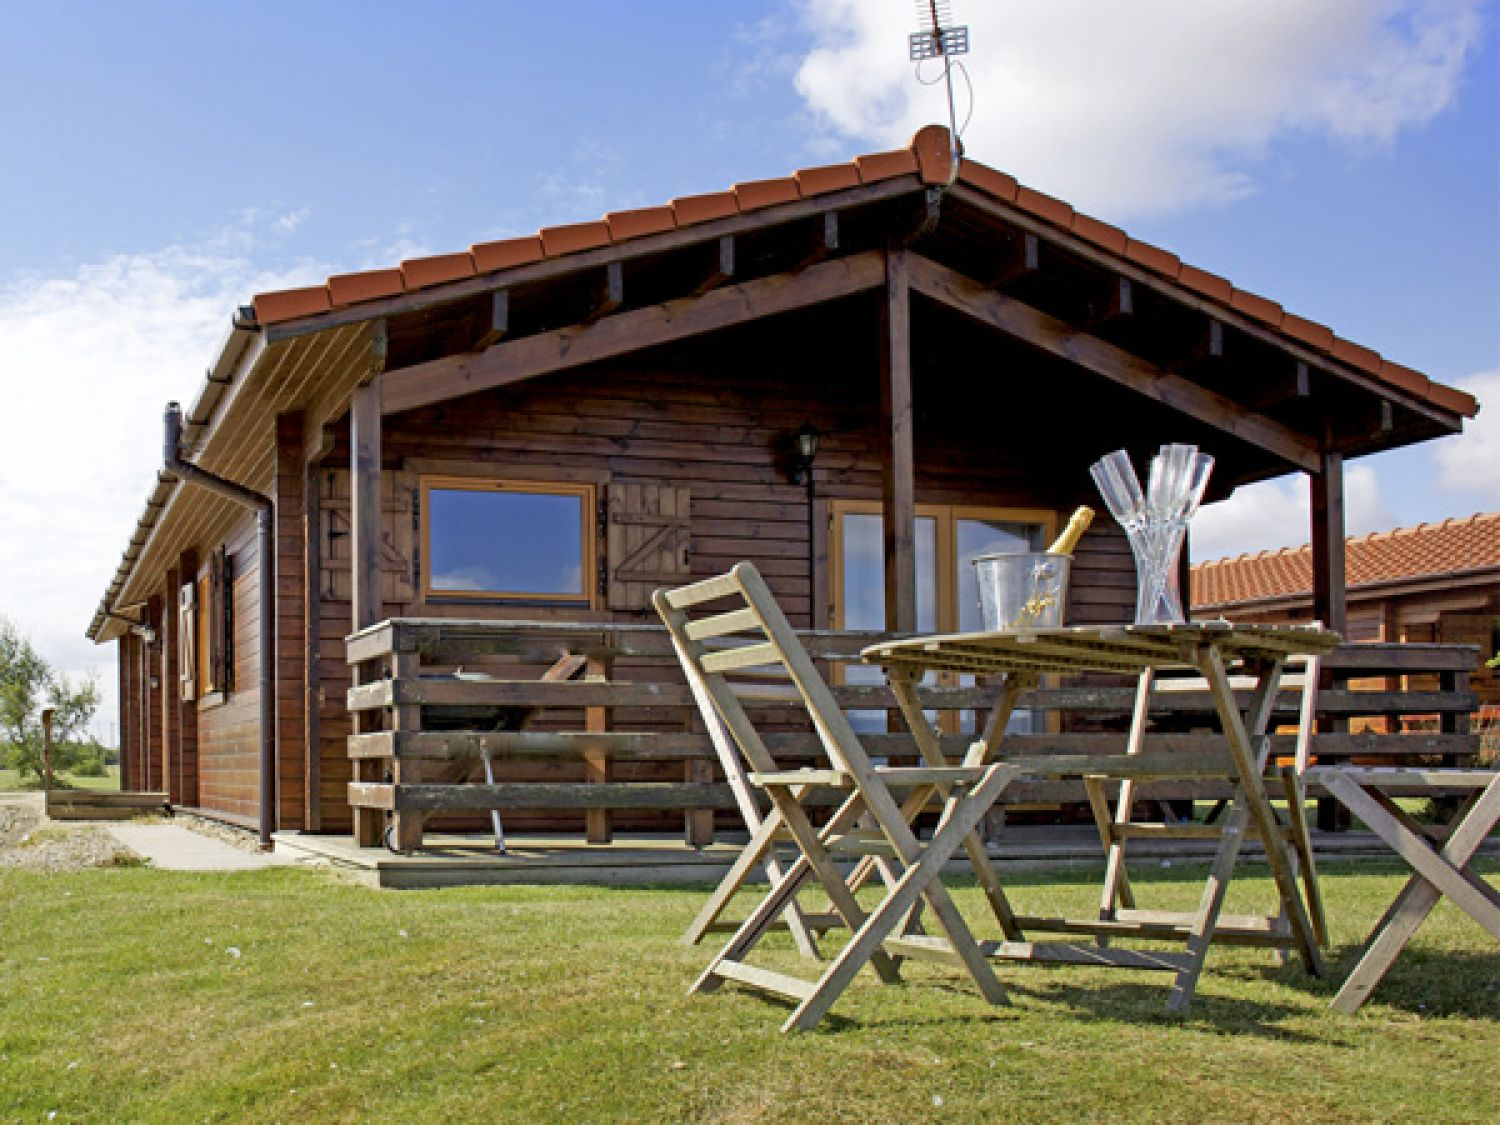 No 26 Tattershall Country Park - Holiday Park in Horncastle, Lincolnshire, England